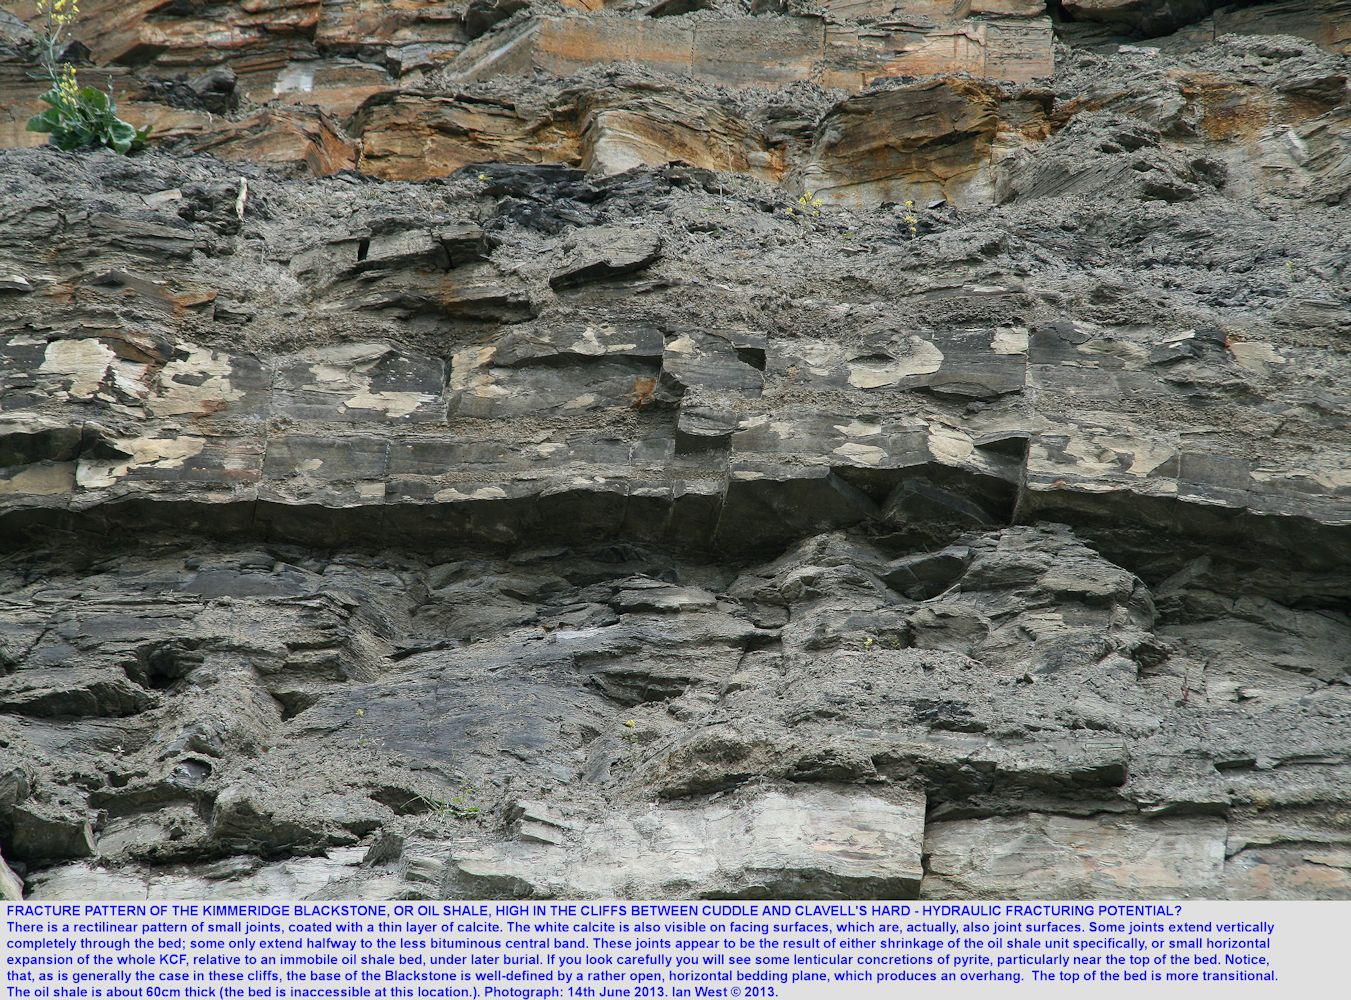 A rectilinear fracture pattern, possibly useful for hydraulic fracturing, seen in the Kimmeridge Blackstone or oil shale in the cliffs between Cuddle and Clavell's Hard, east of  Kimmeridge Bay, Dorset